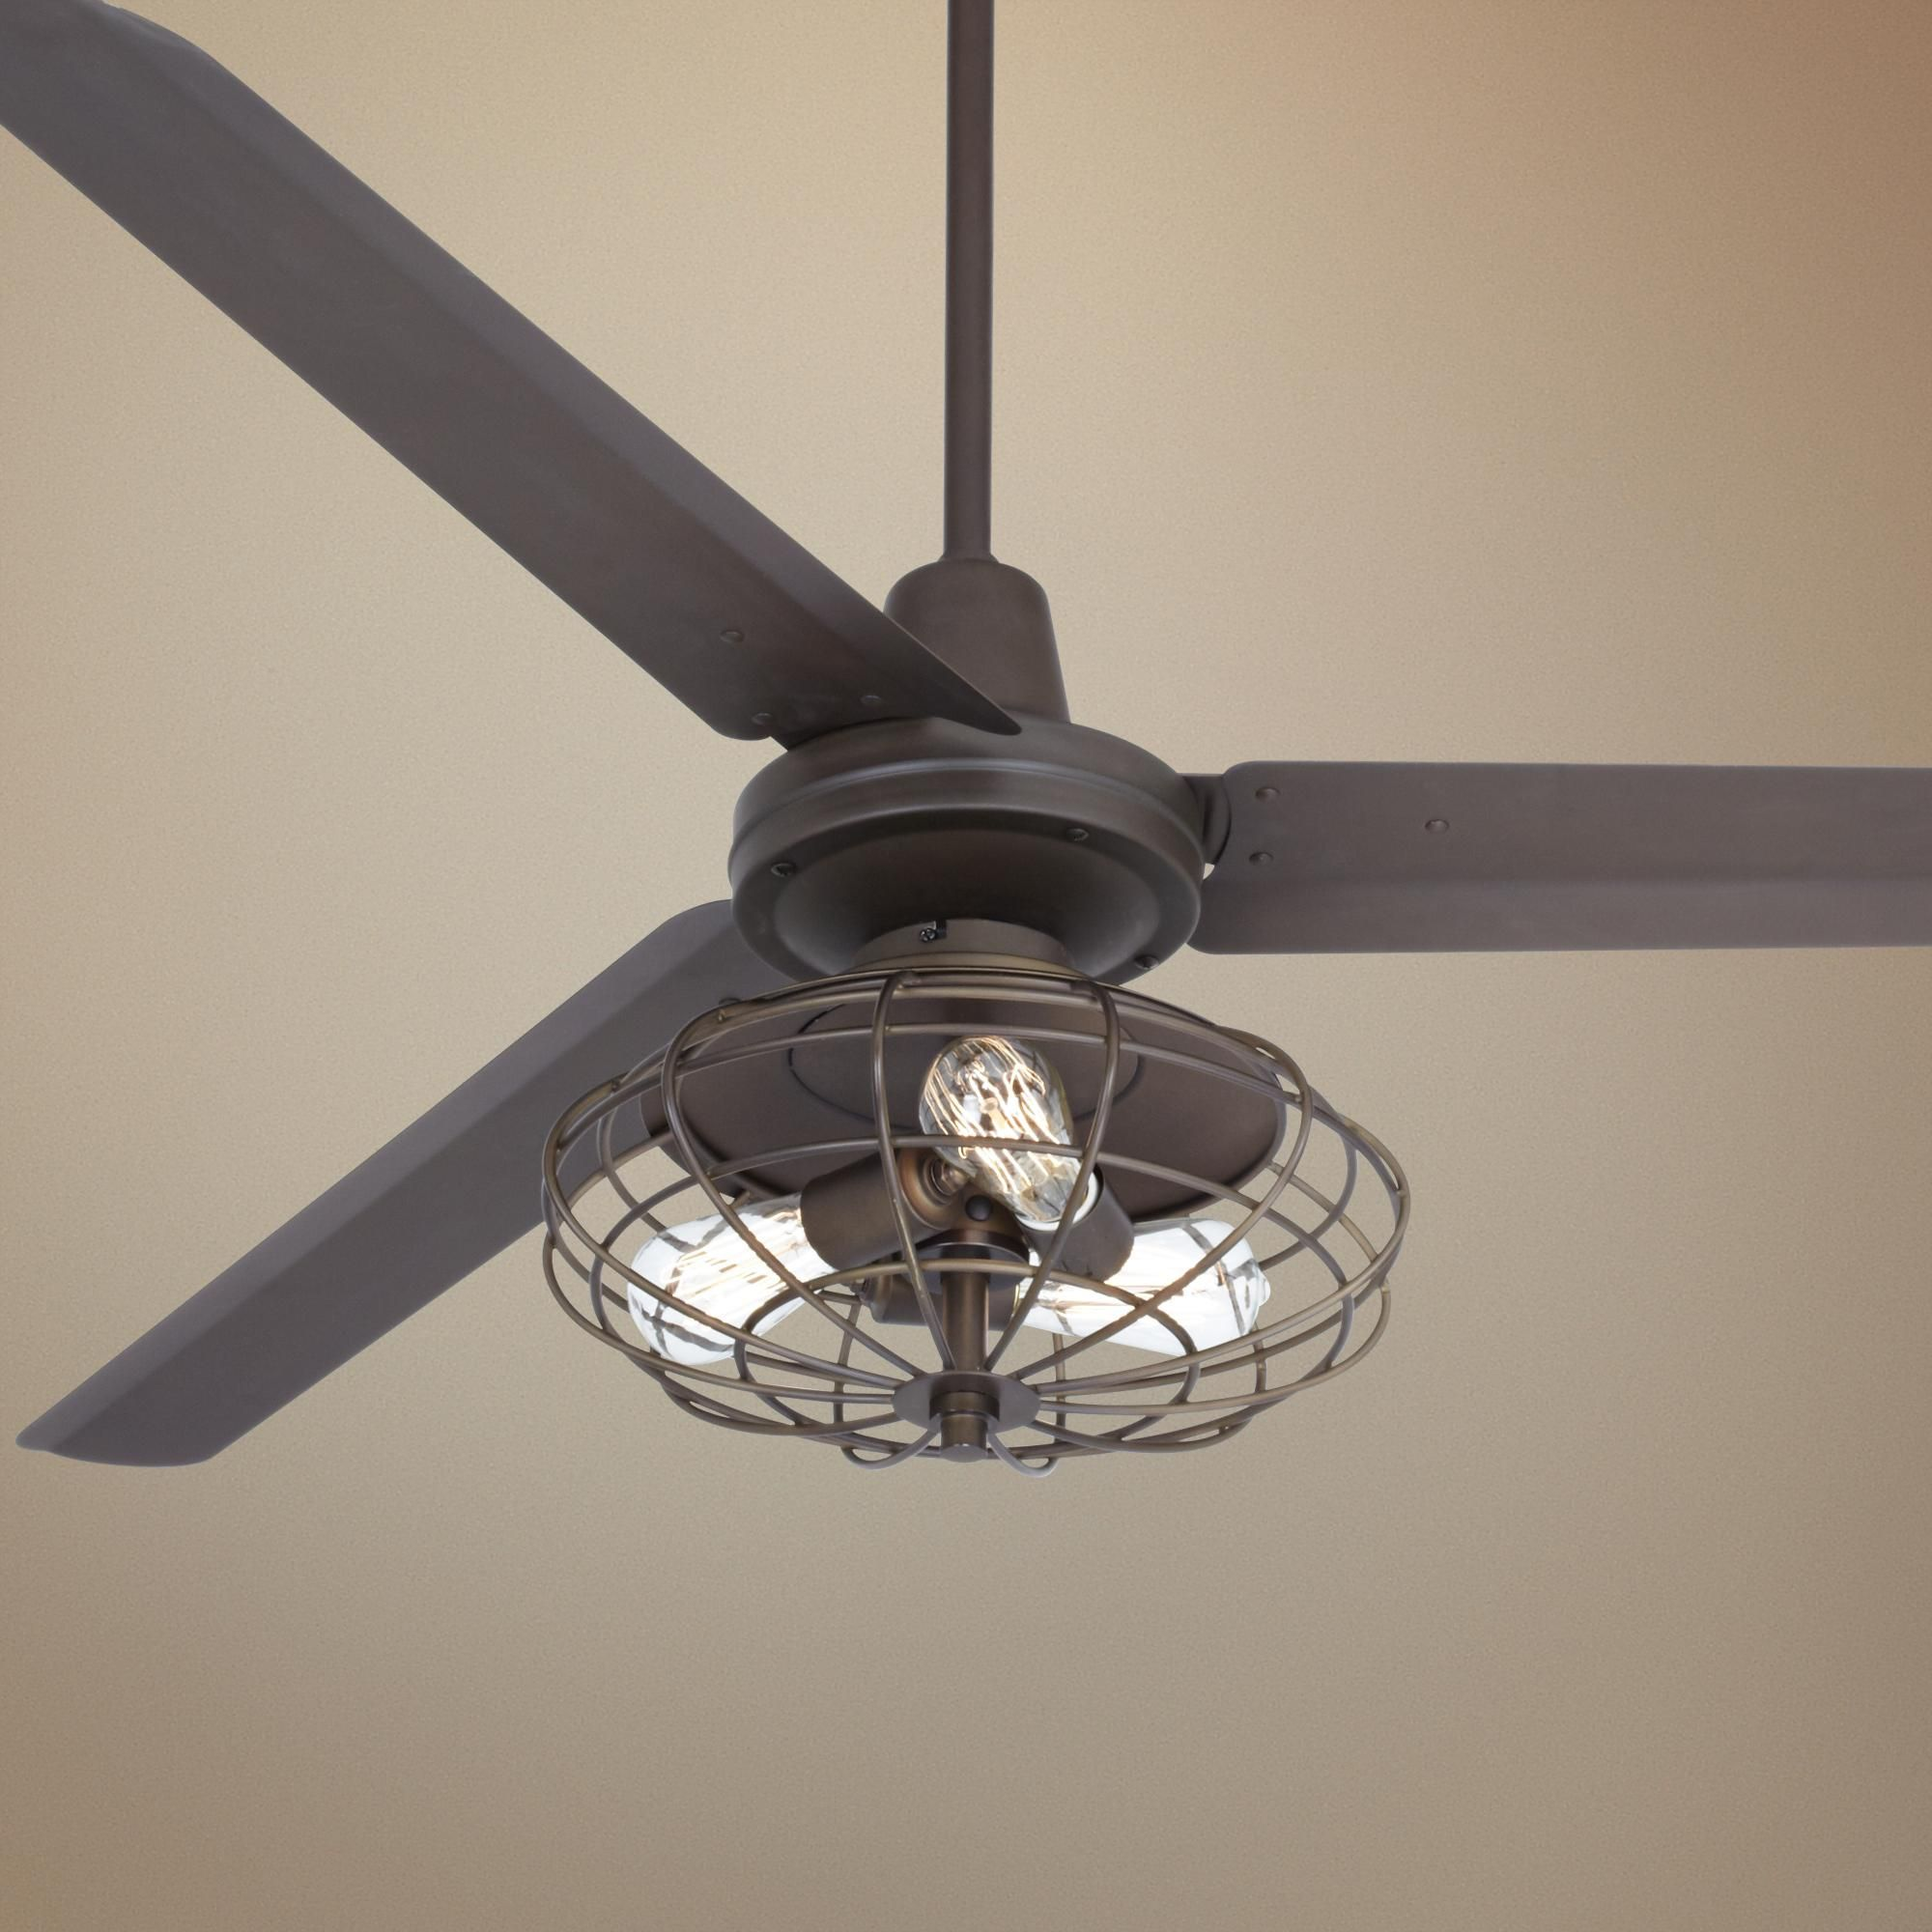 60 Turbina Industrial Oil Rubbed Bronze Ceiling Fan U4514 Y2846 80507 Lamps Plus Farmhouse Ceiling Fan Bronze Ceiling Fan Ceiling Fan